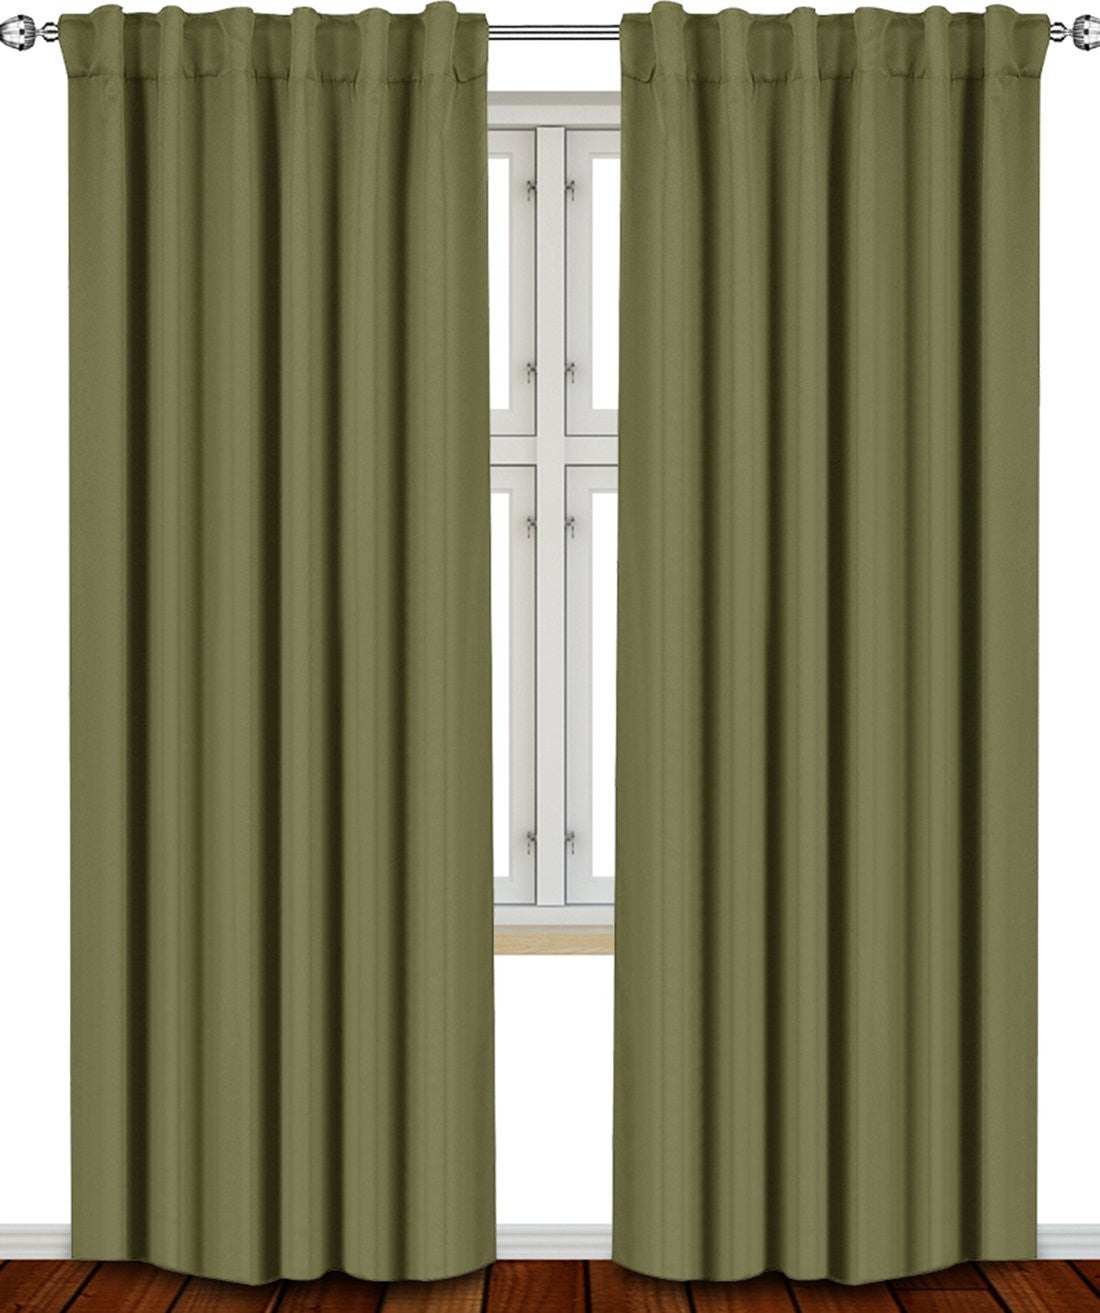 Blackout Room Darkening Curtains (2 Panel Set)